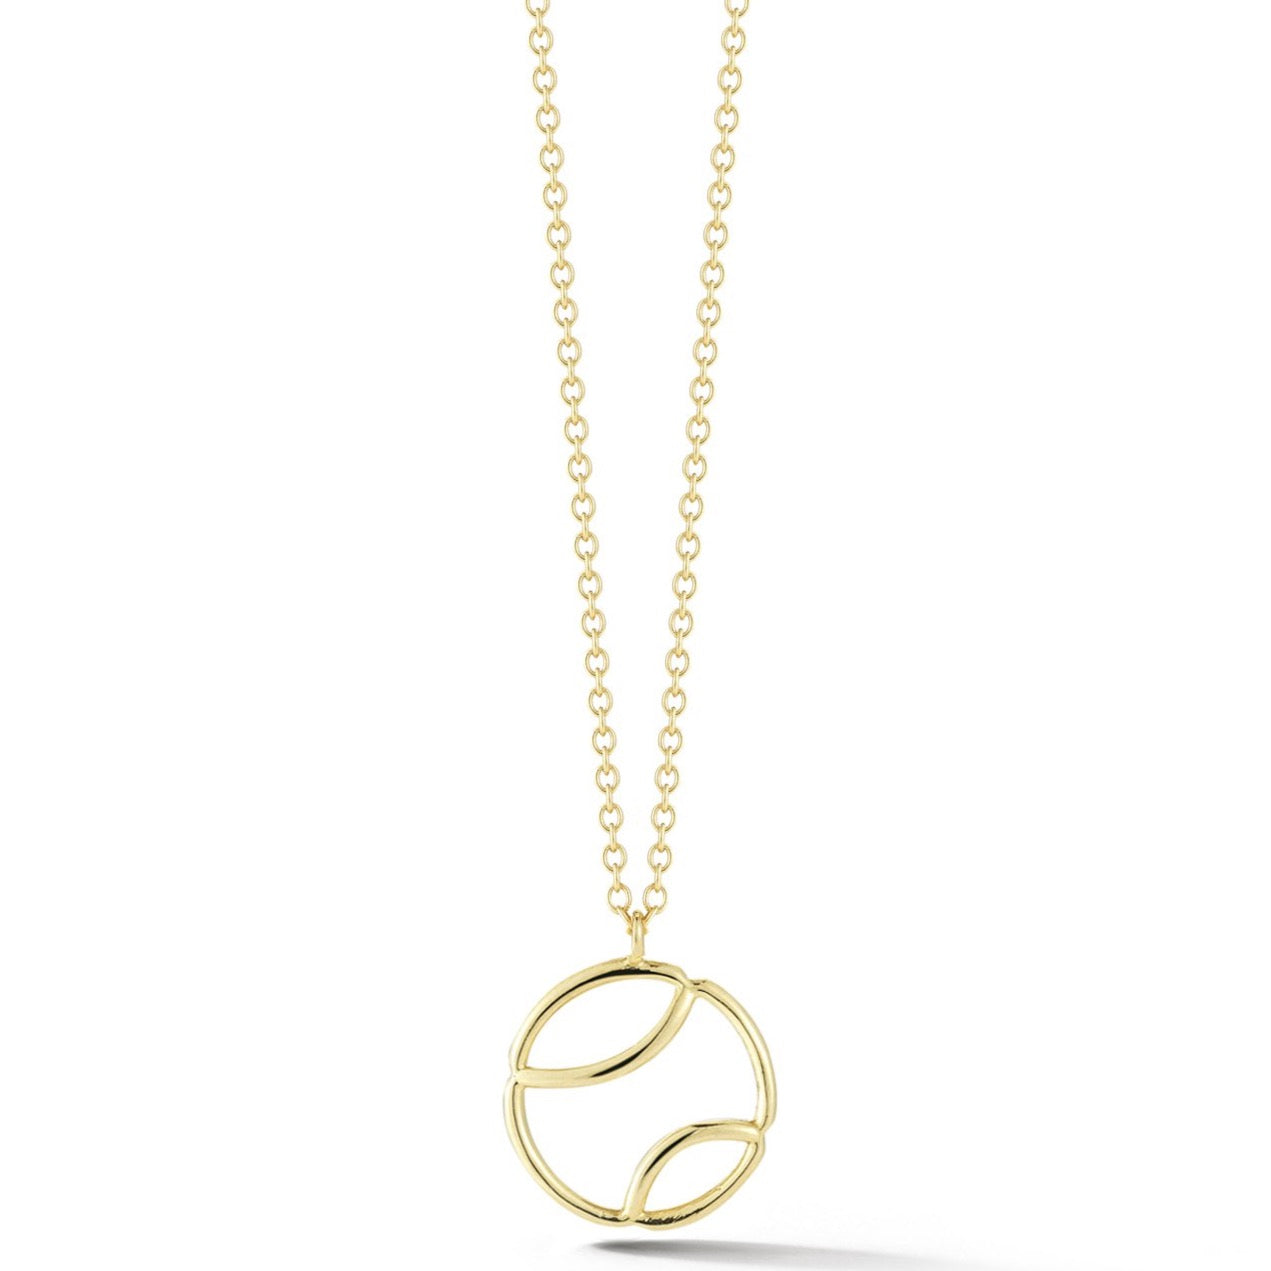 AF-JEWELERS-TENNIS-ANYONE-BALL-PENDANT-NECKLACE-18K-YELLOW-GOLD-E1550G